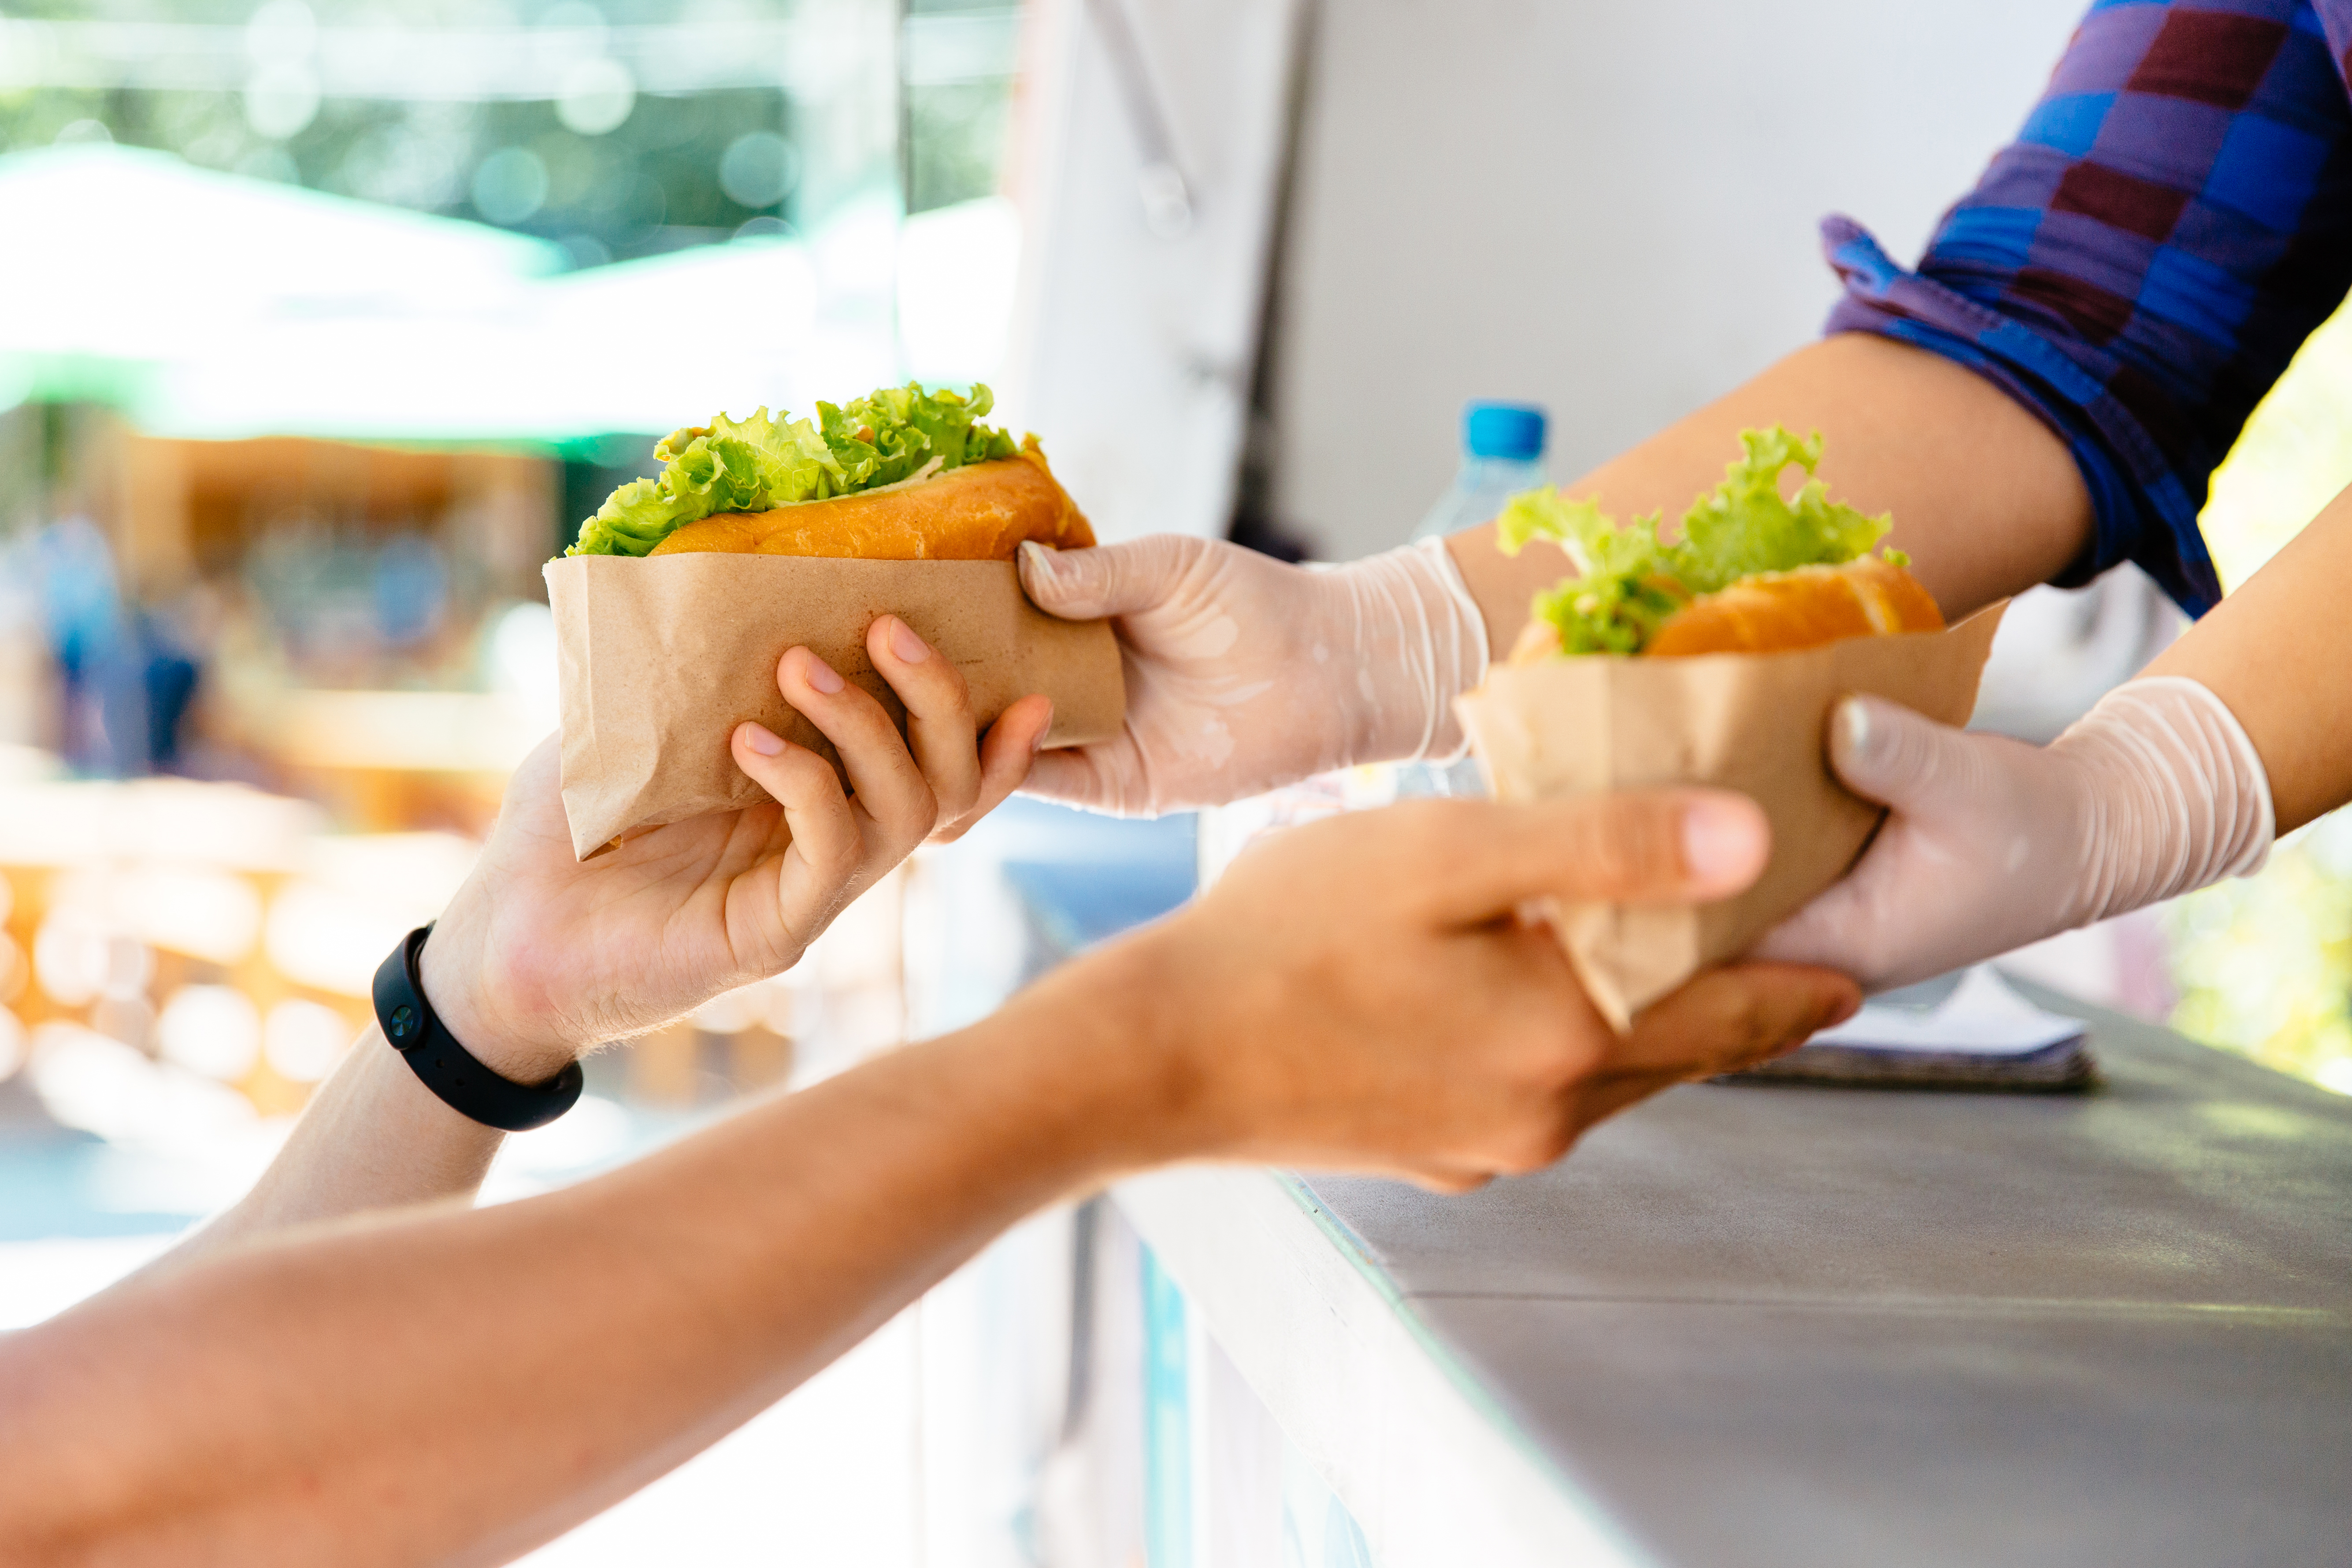 man-buying-two-hot-dogs-at-food-truck-outdoors-street-food-nodat-app